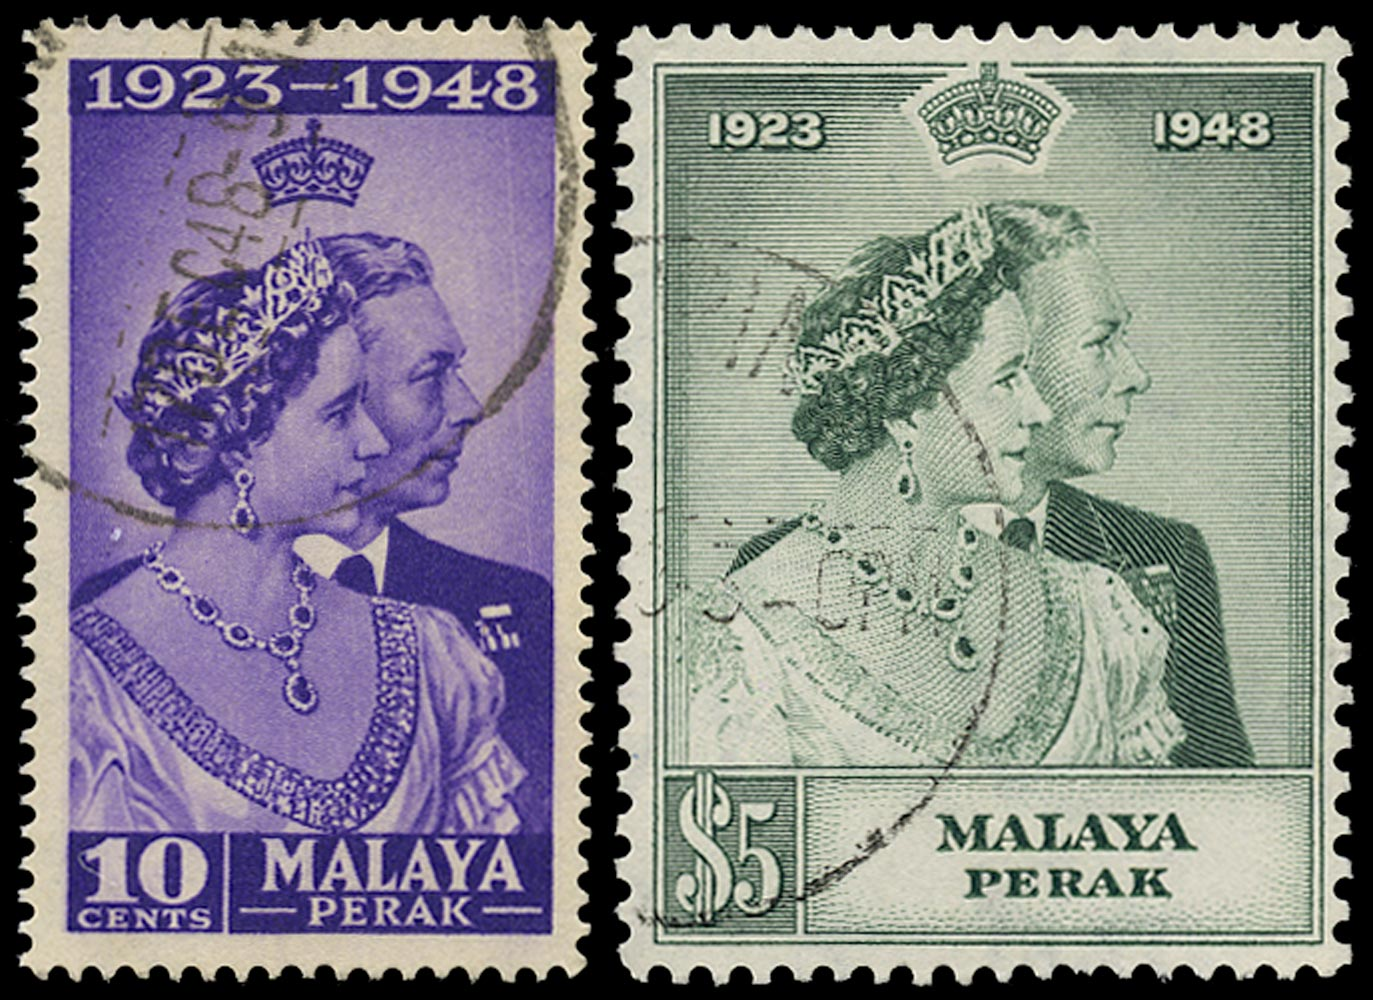 MALAYA - PERAK 1948  SG122/23 Used Royal Silver Wedding 10c and $5